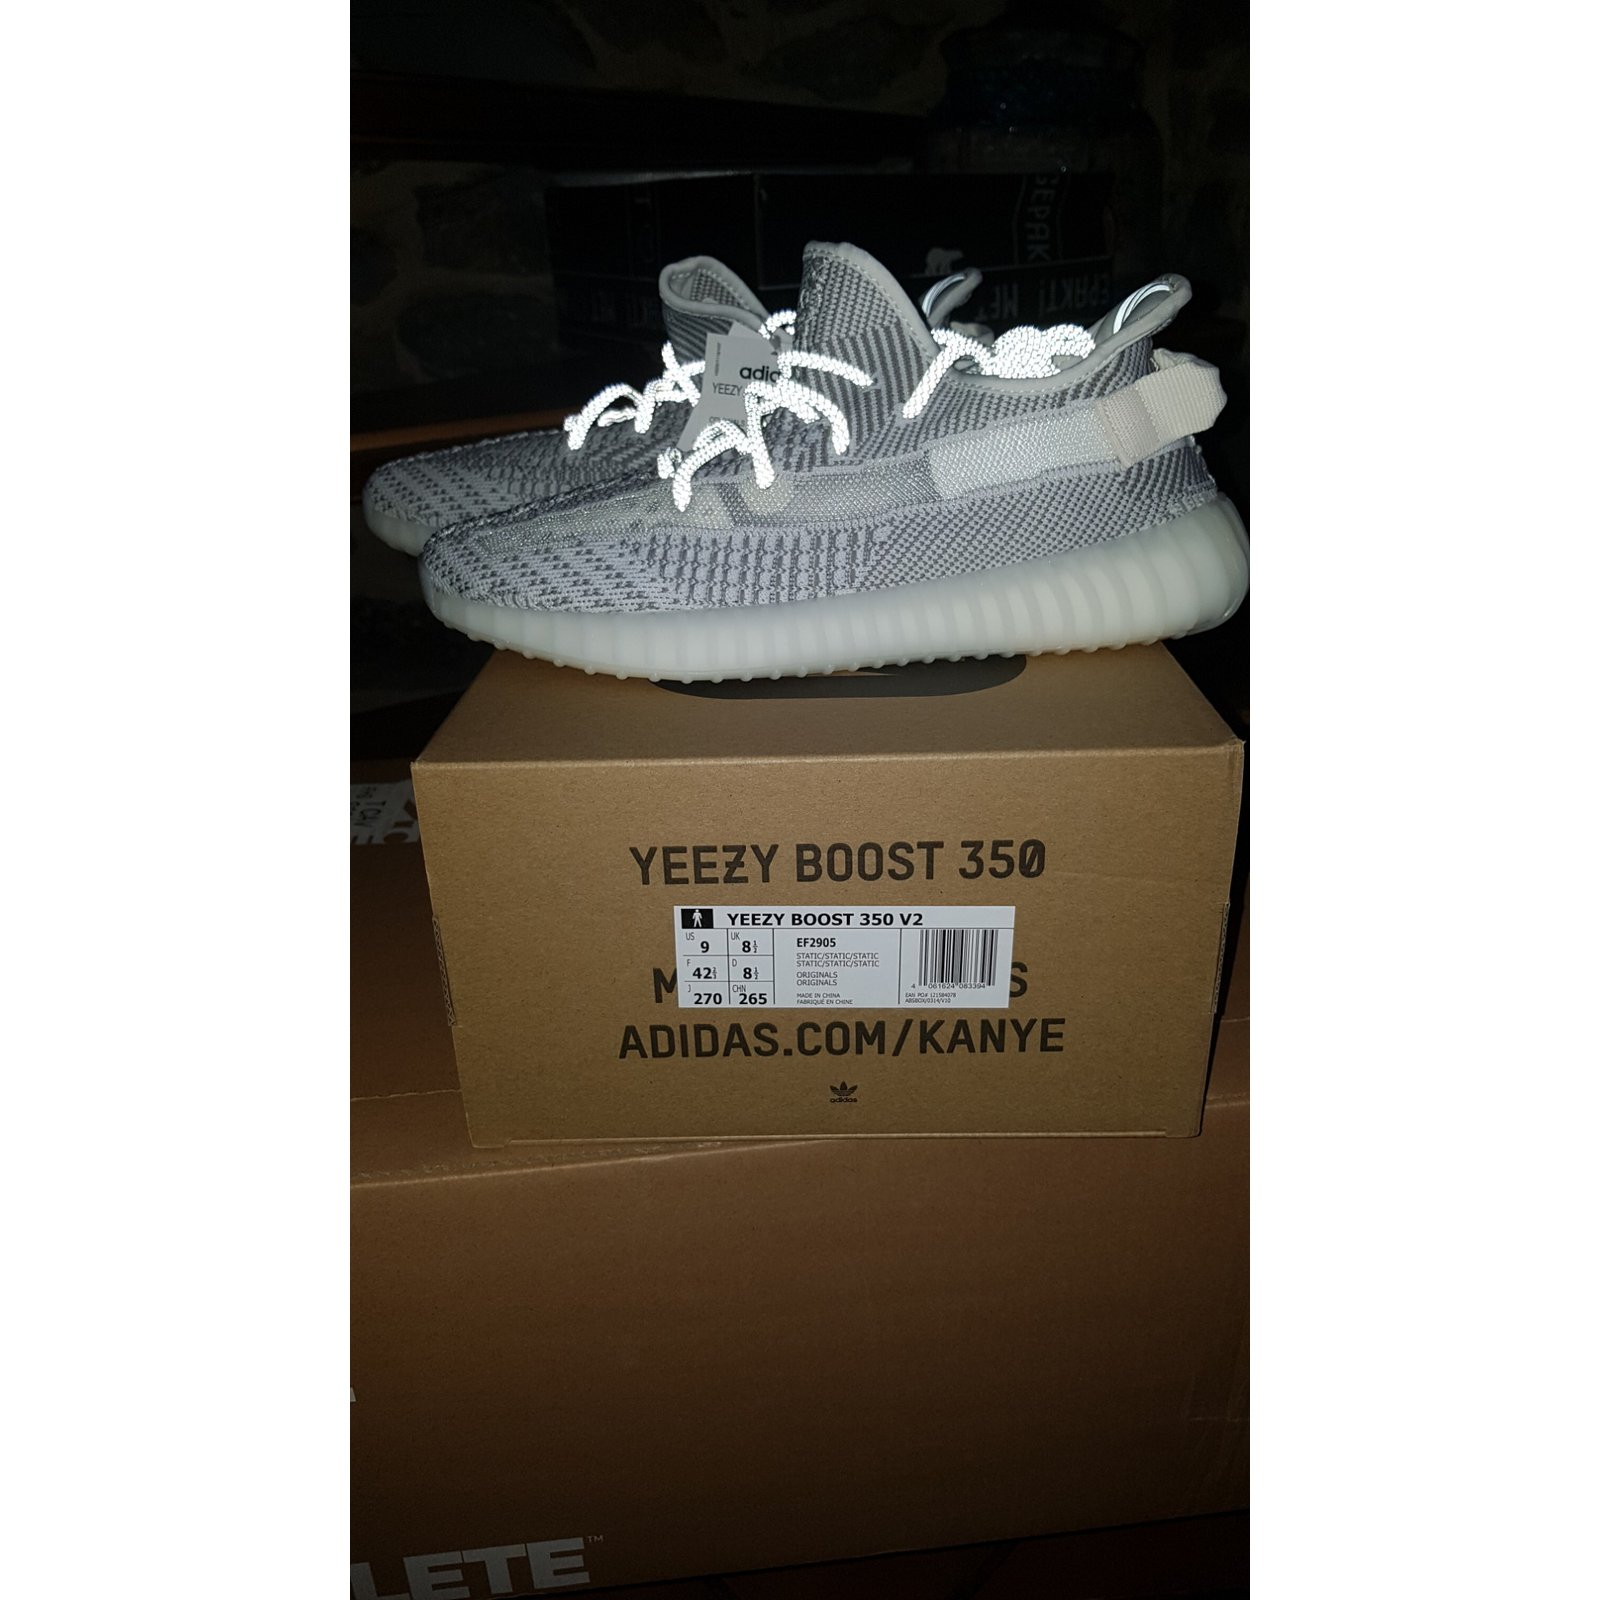 ADIDAS yeezy boost 350 V2 static Non Reflective